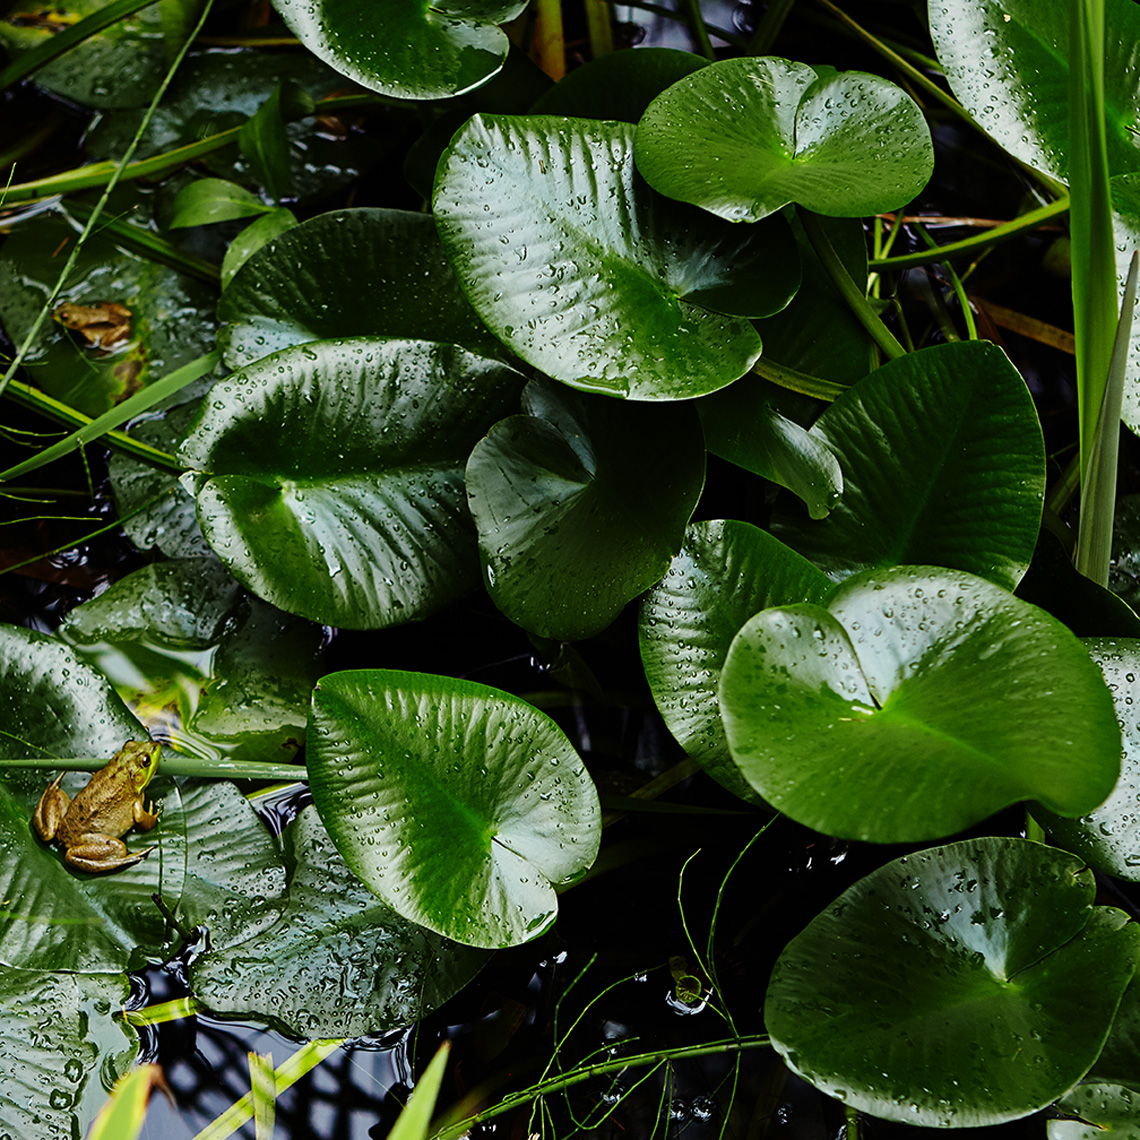 green frogs on green lilly pads